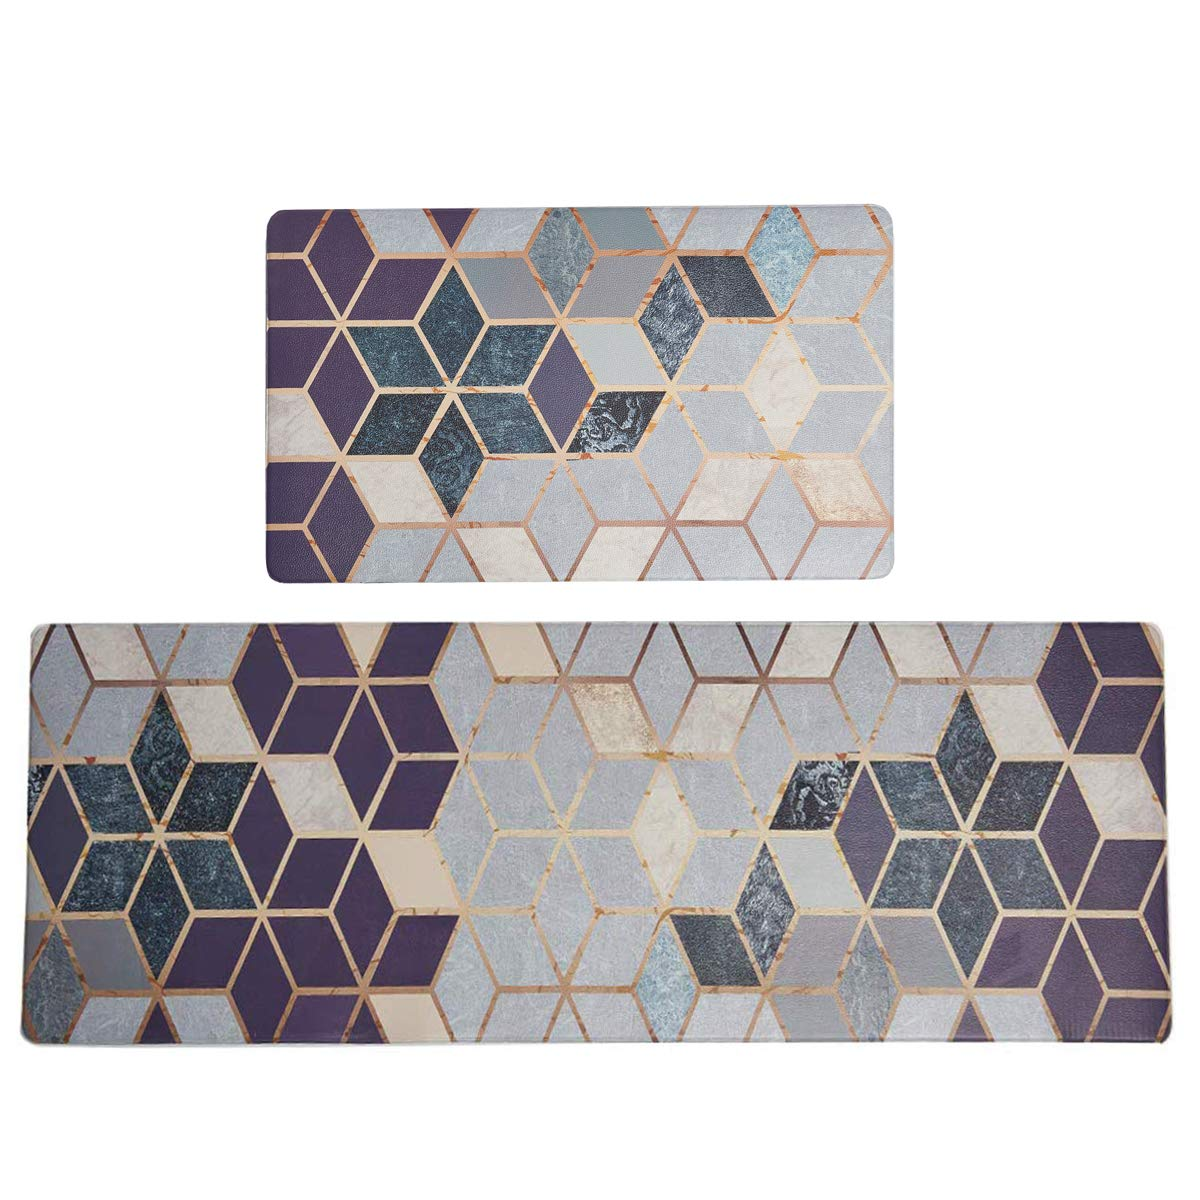 SHACOS Kitchen Rugs Mats Set of 2 Comfort Mat PVC Leather Floor Mat Anti Fatigue Wipe Clean Non Slip Oil Stain Resistant (18''x30''+20''x55'', Cubes)